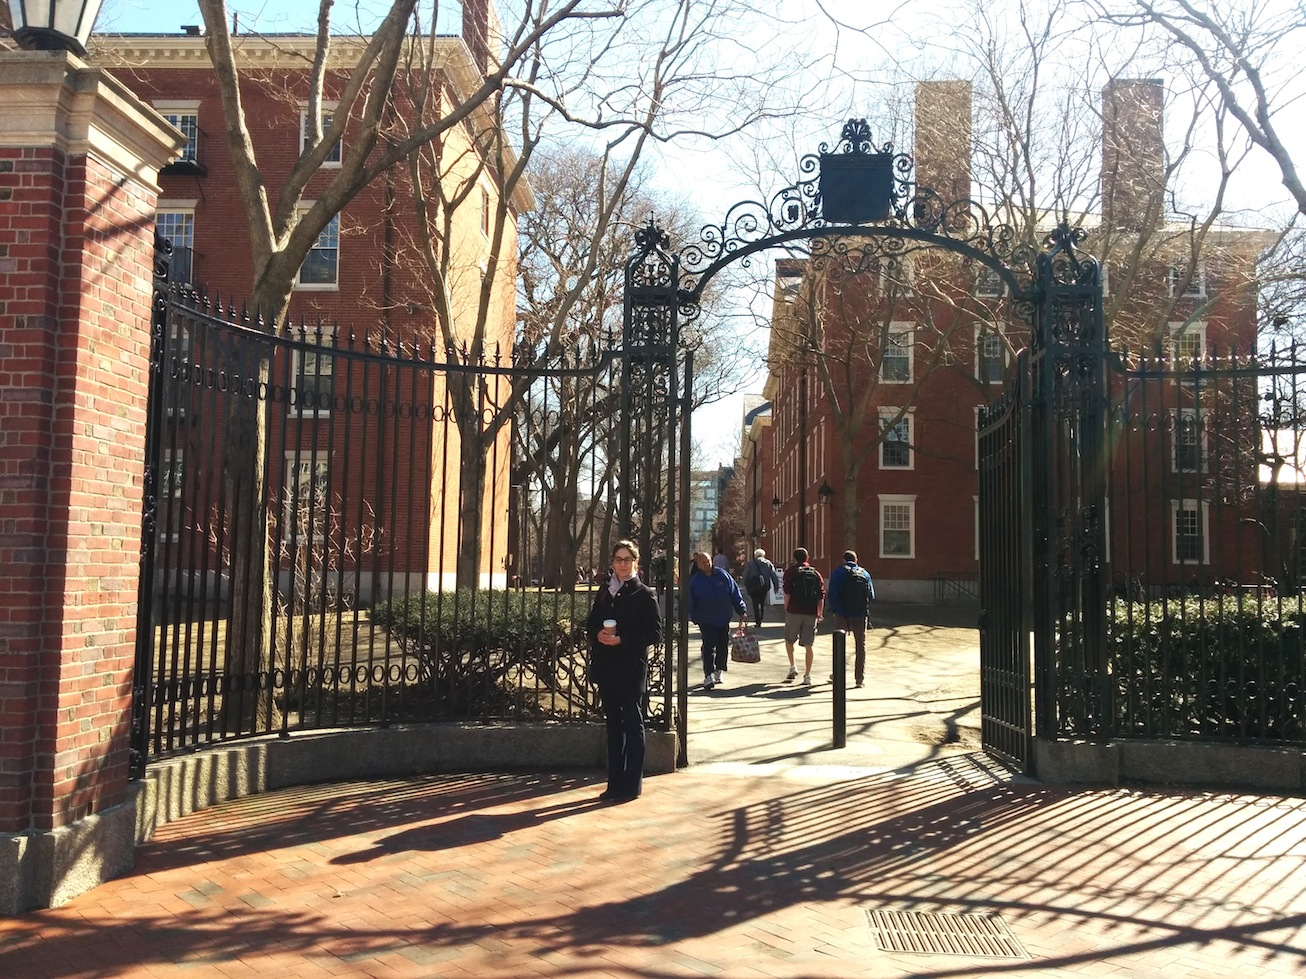 Entrance to Harvard Yard, Spring 2014